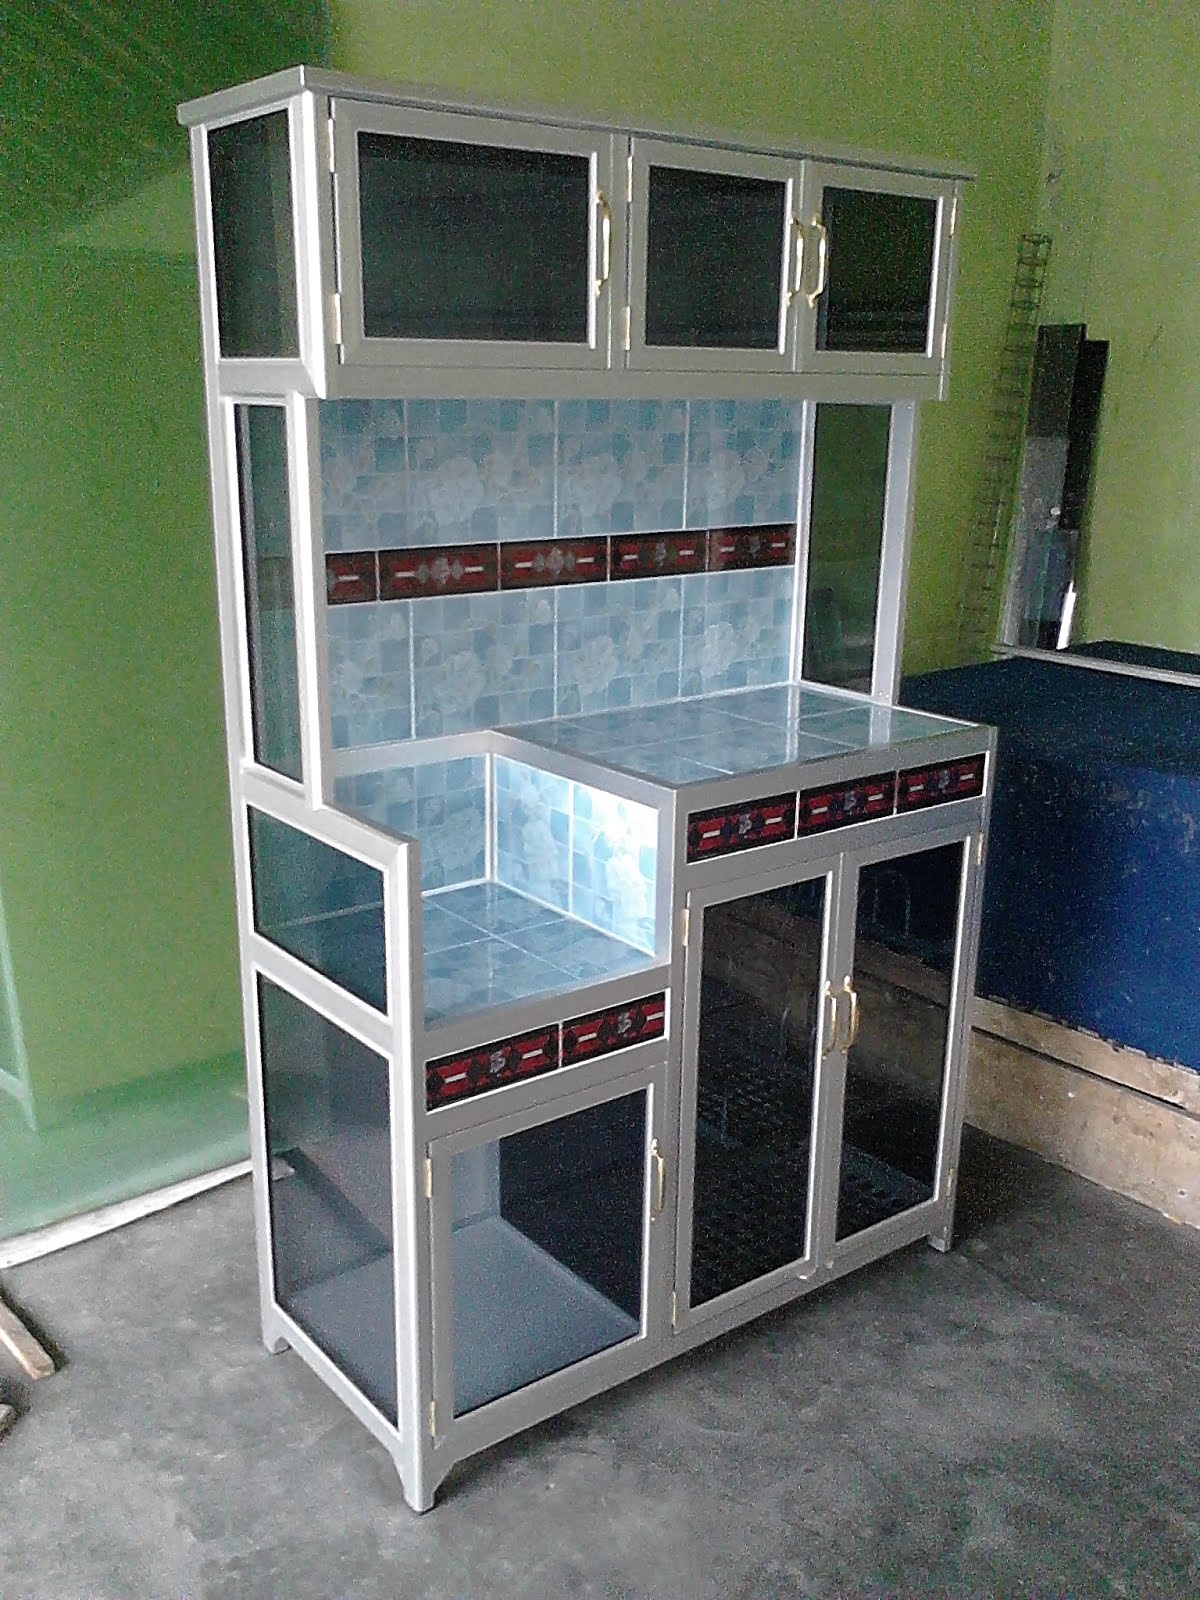 Harga kitchen set aluminium murah jual for Harga kitchen set murah